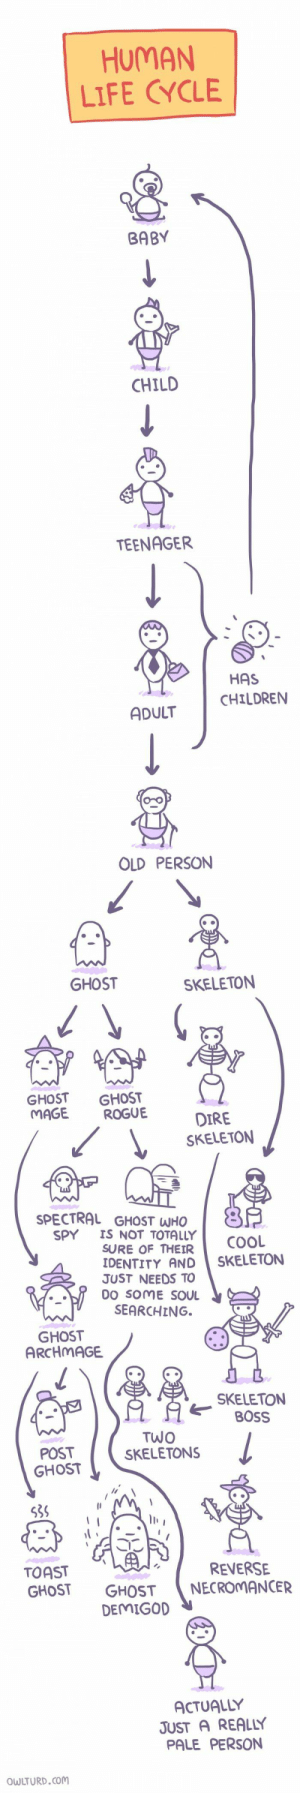 Life, Cool, and Ghost: HUMAN  LIFE CYCLE  BABY  CHILD  TEENAGER  HAS  CHILDRENN  ADULT  OLD PERSON  GHOST  SKELETON  GHOST GHOST  MAGE ROGUE  DIRE  SKELETON  SPECTRAL GHOST WHO  SPY IS NOT TOTALLY  SURE OF THEIR  COOL  DENTITY AND SKELETON  JUST NEEDS TO  DO SOME SOU  SEARCHING.  GHOST  ARCHMAGE  SKELETON  OSS  POST  GHOST  TWO  SKELETONS  la  539  TOAST  GHOST GHOSTNECROMANCER  REVERSE  DEMIGO  ACTUALLY  JUST A REALLY  PALE PERSON  WLTURD.com